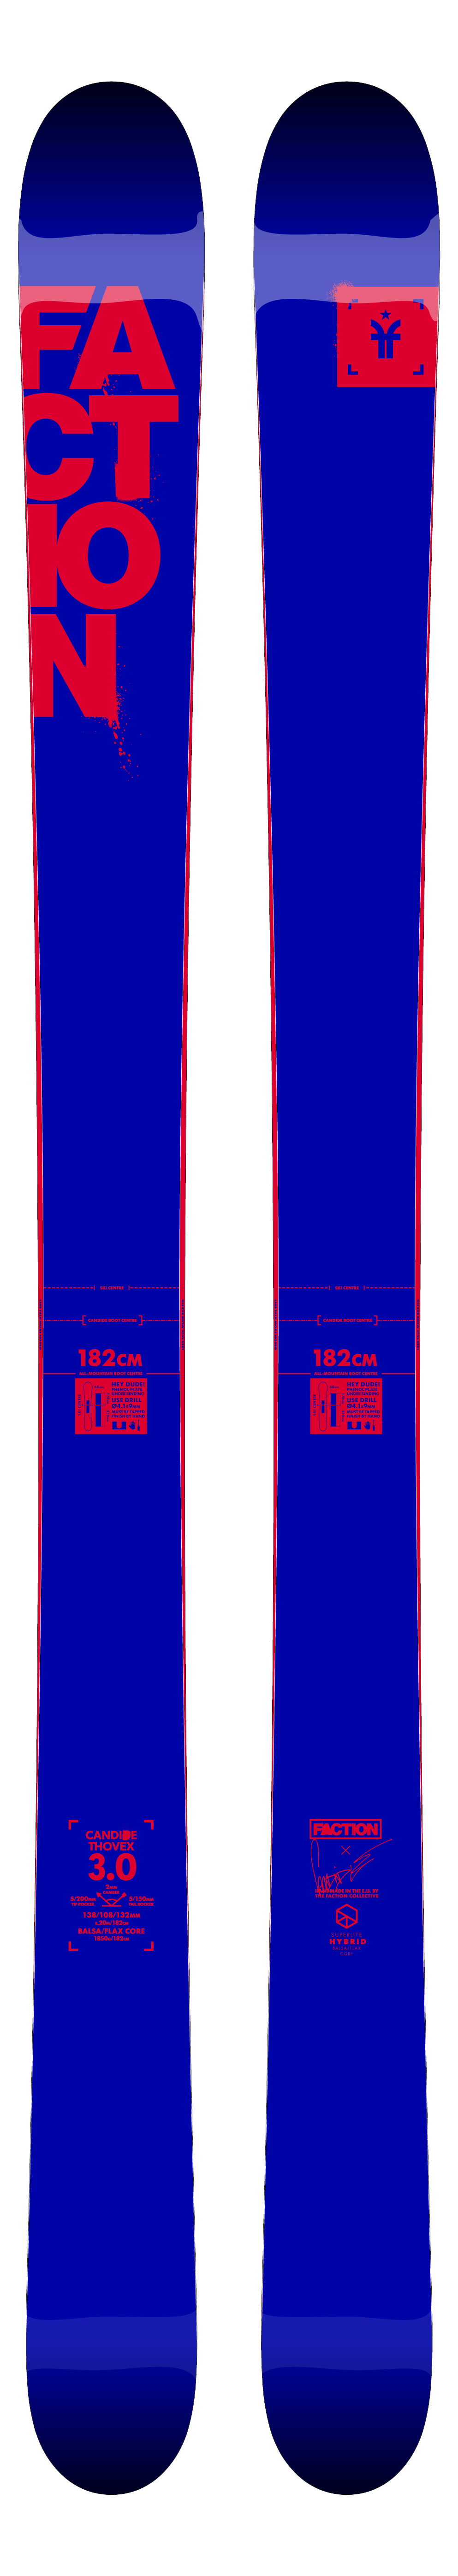 Faction Skis Candide 3.0, $980